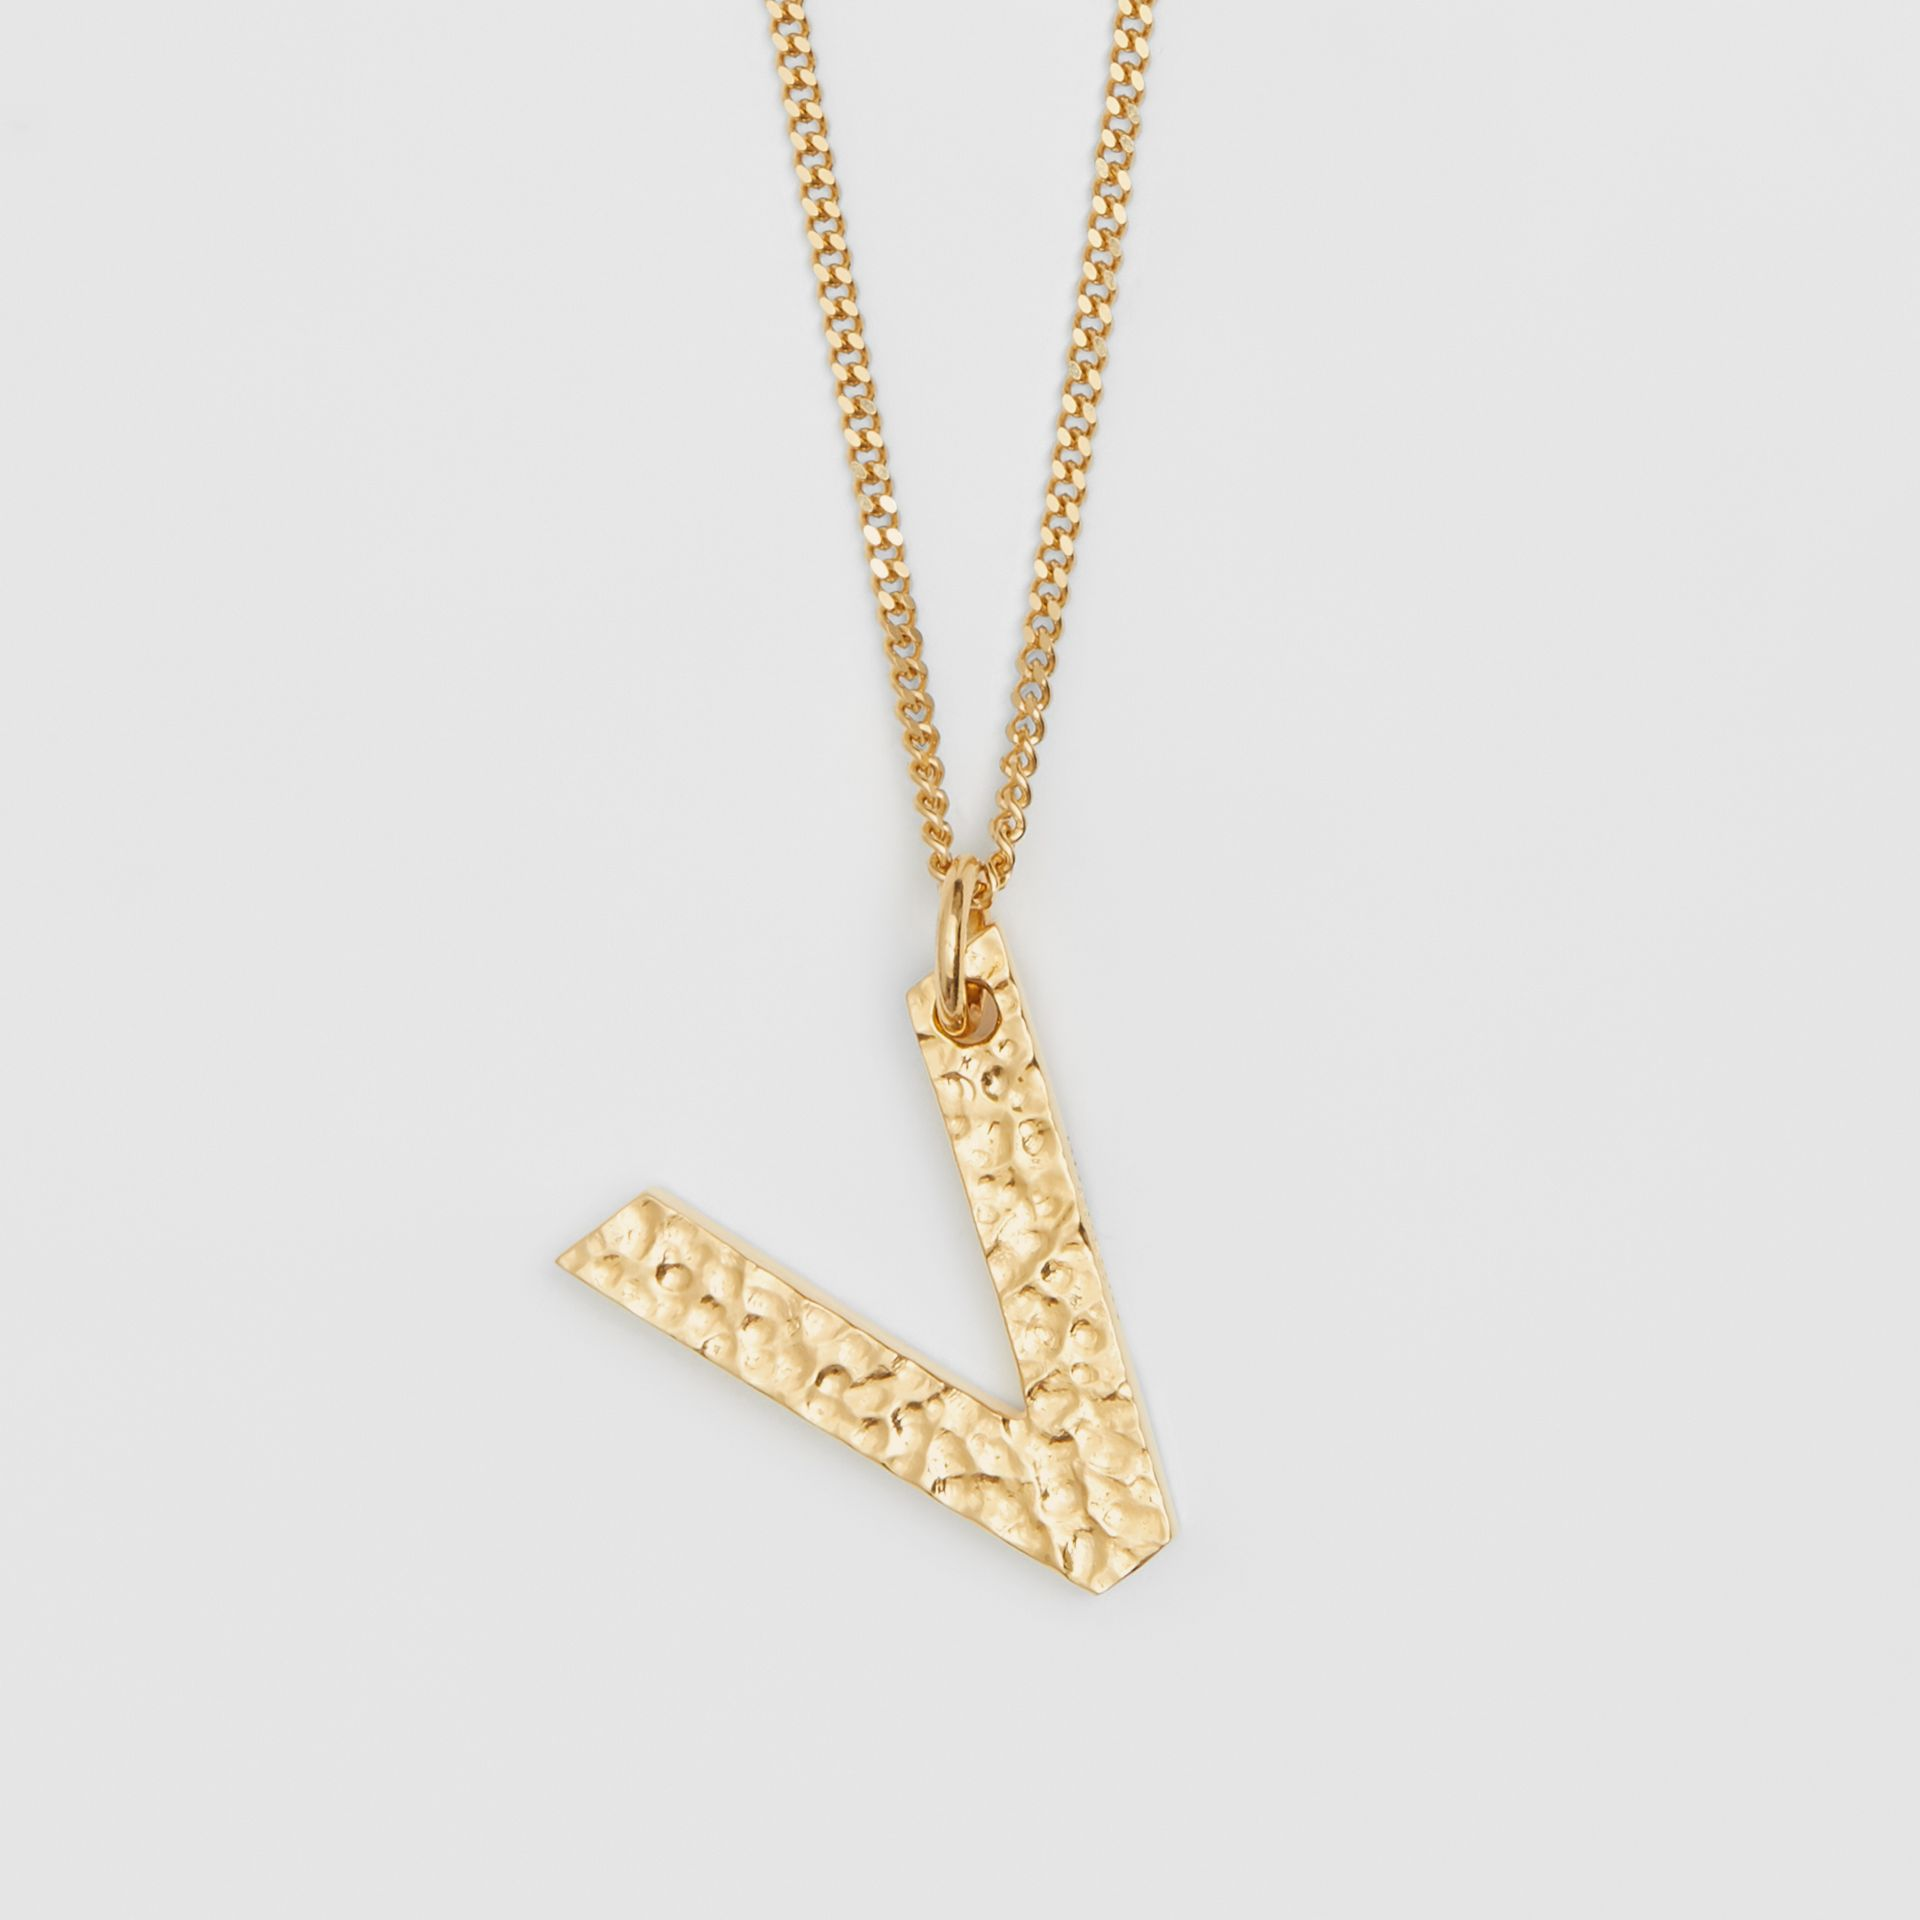 'V' Alphabet Charm Gold-plated Necklace in Light - Women | Burberry Hong Kong S.A.R - gallery image 2